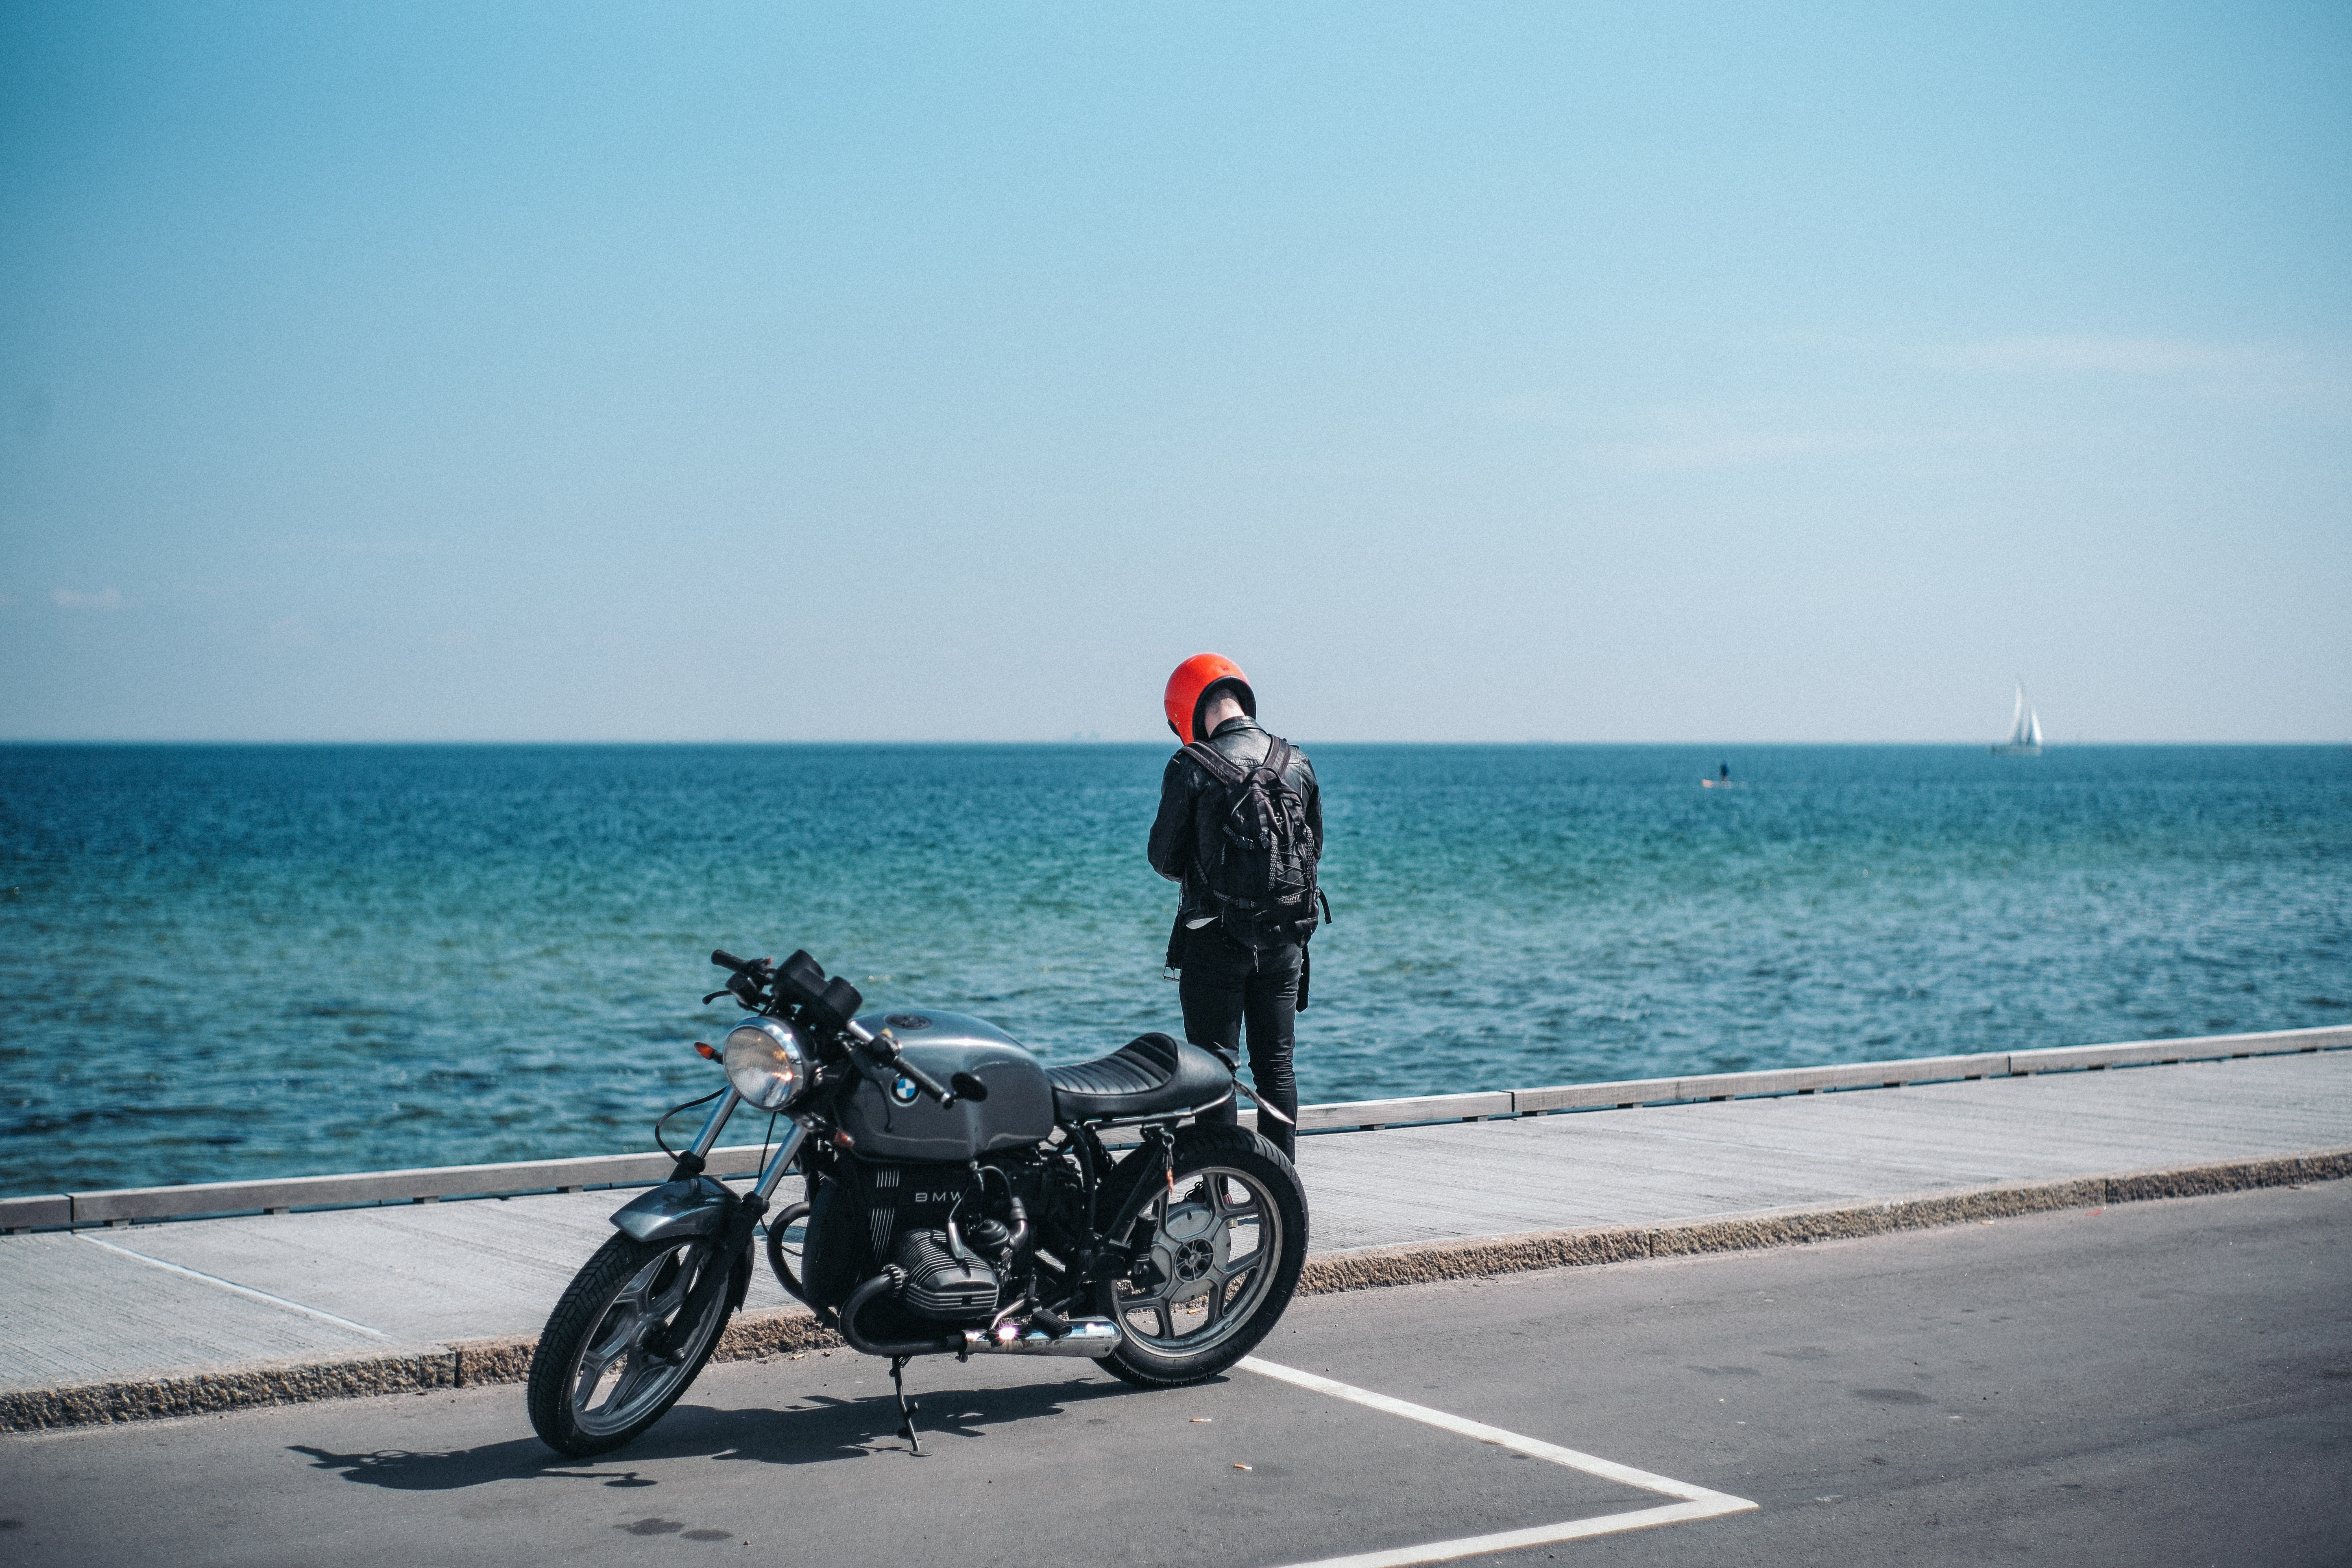 French Riviera on a moto - Credit Martin Pelle Unsplash